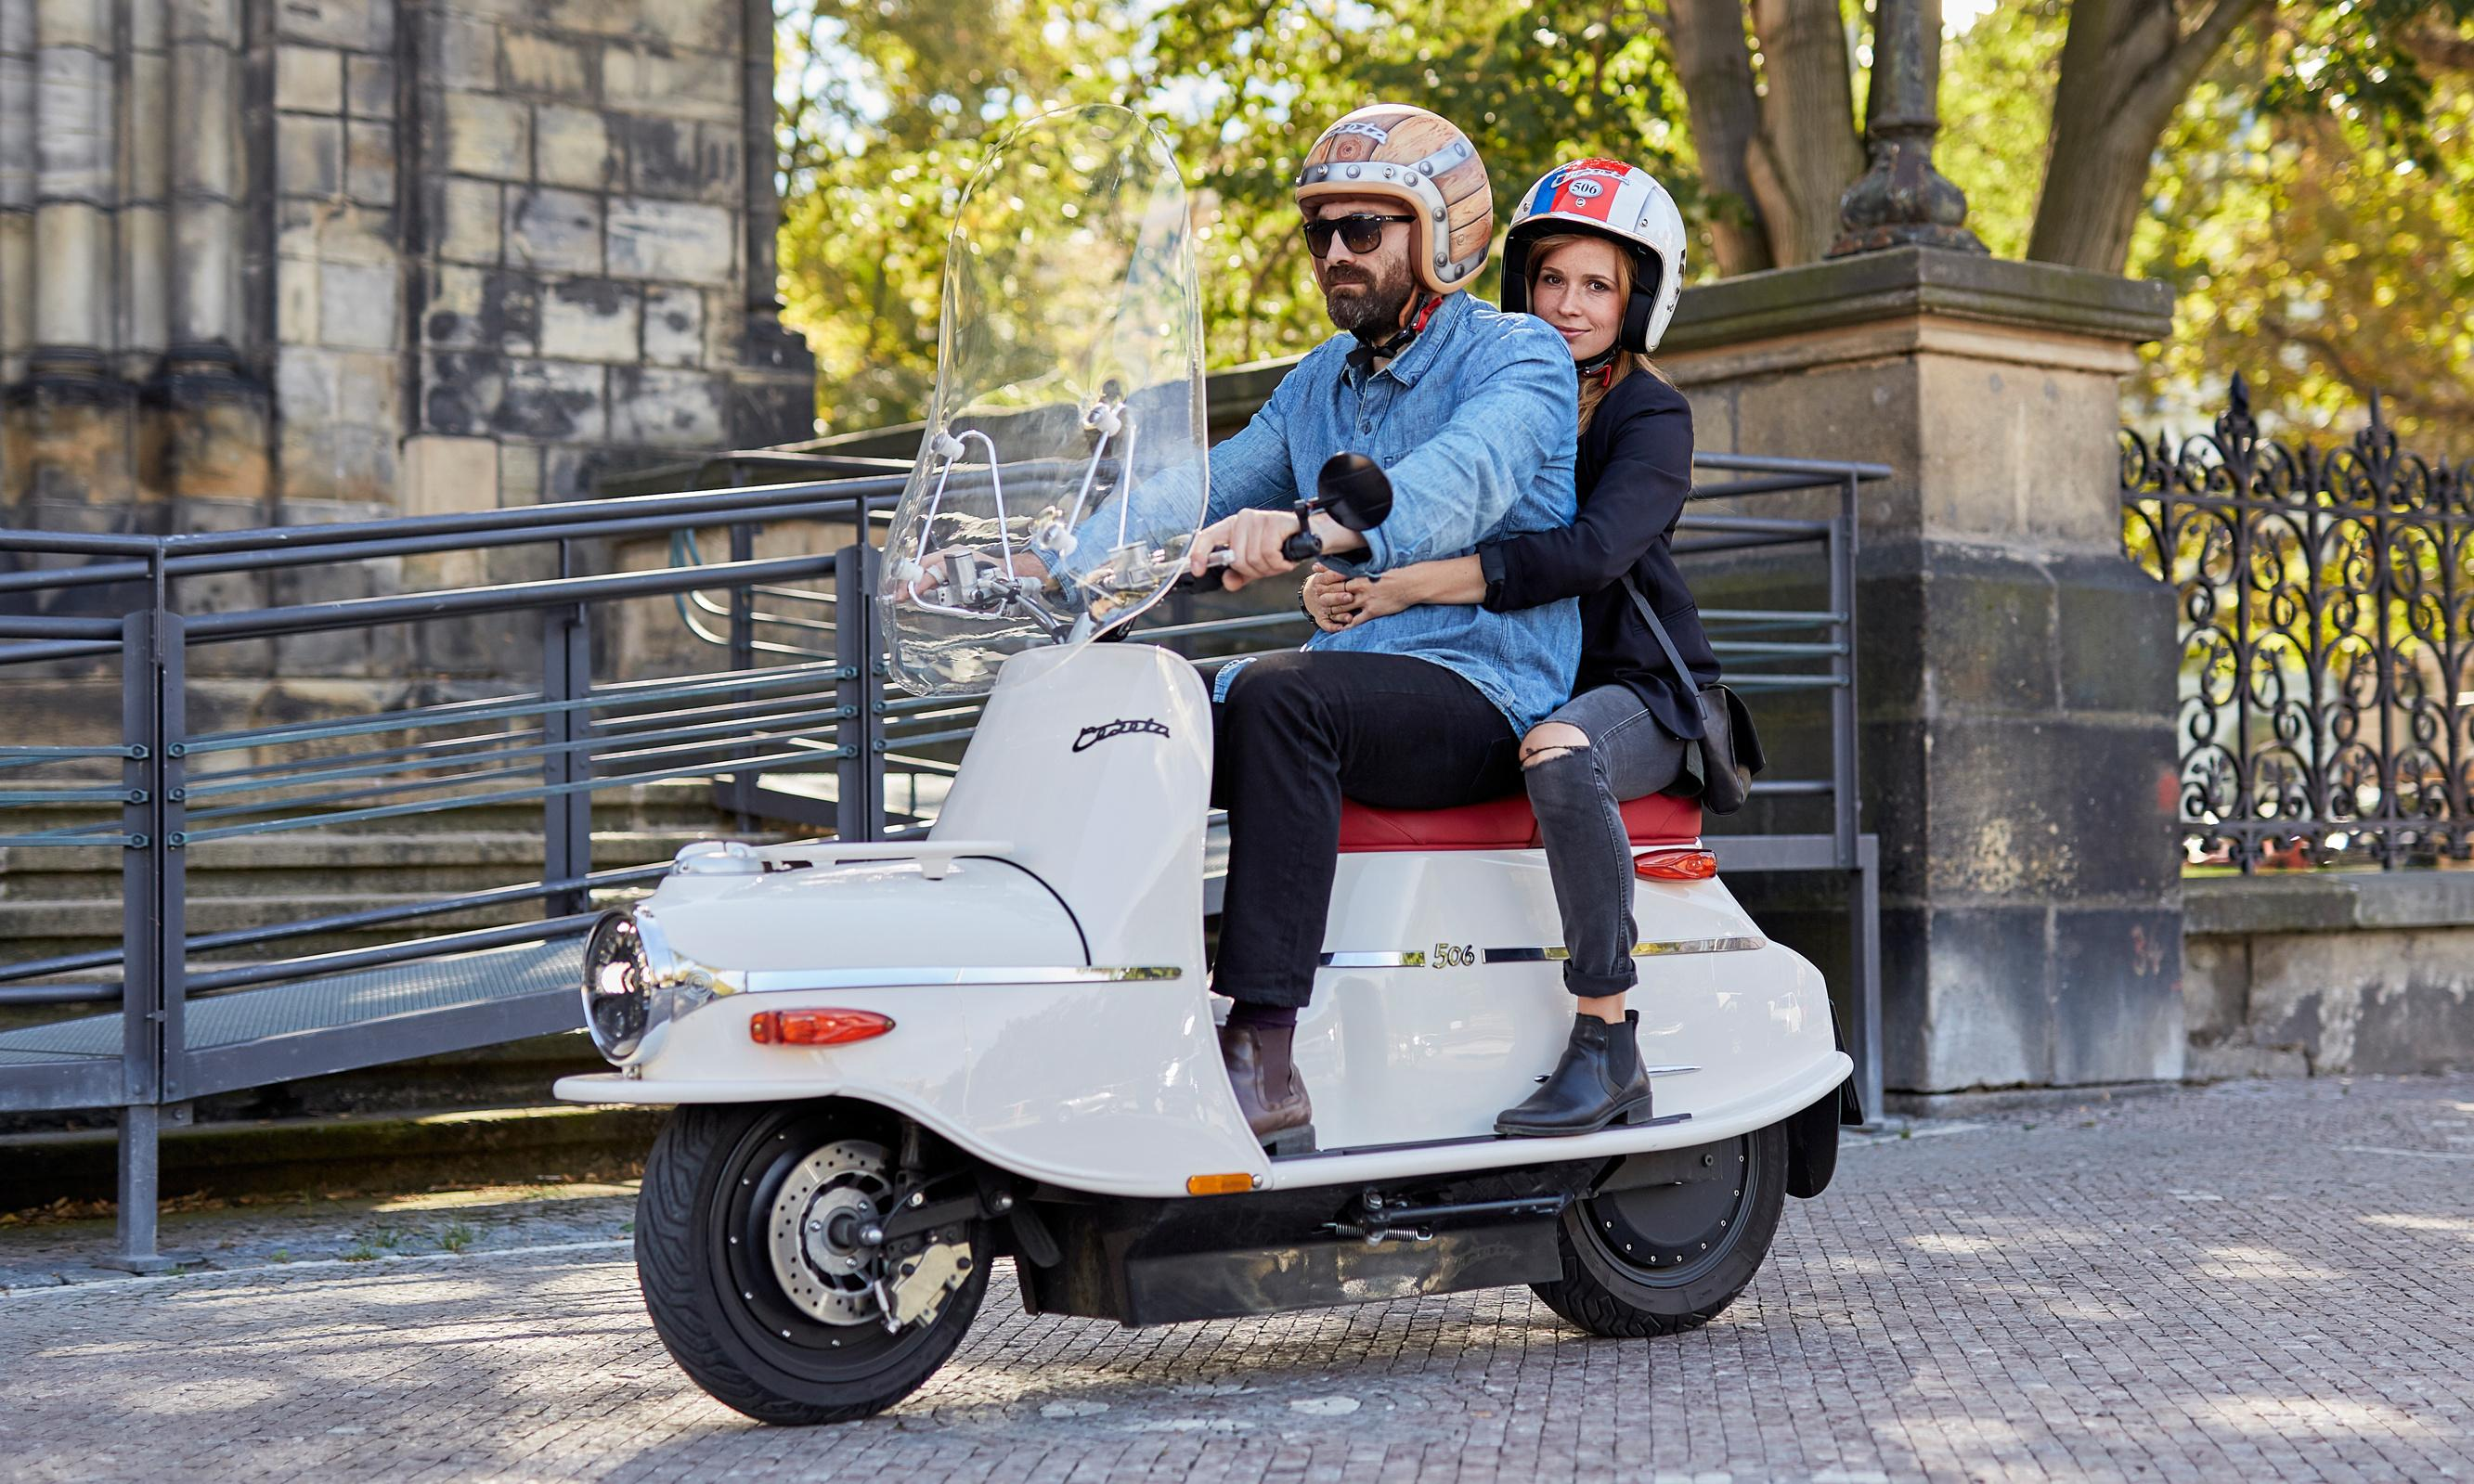 Čezeta e-scooter: 'The rebirth of the chicest communist-era scooter of all time'